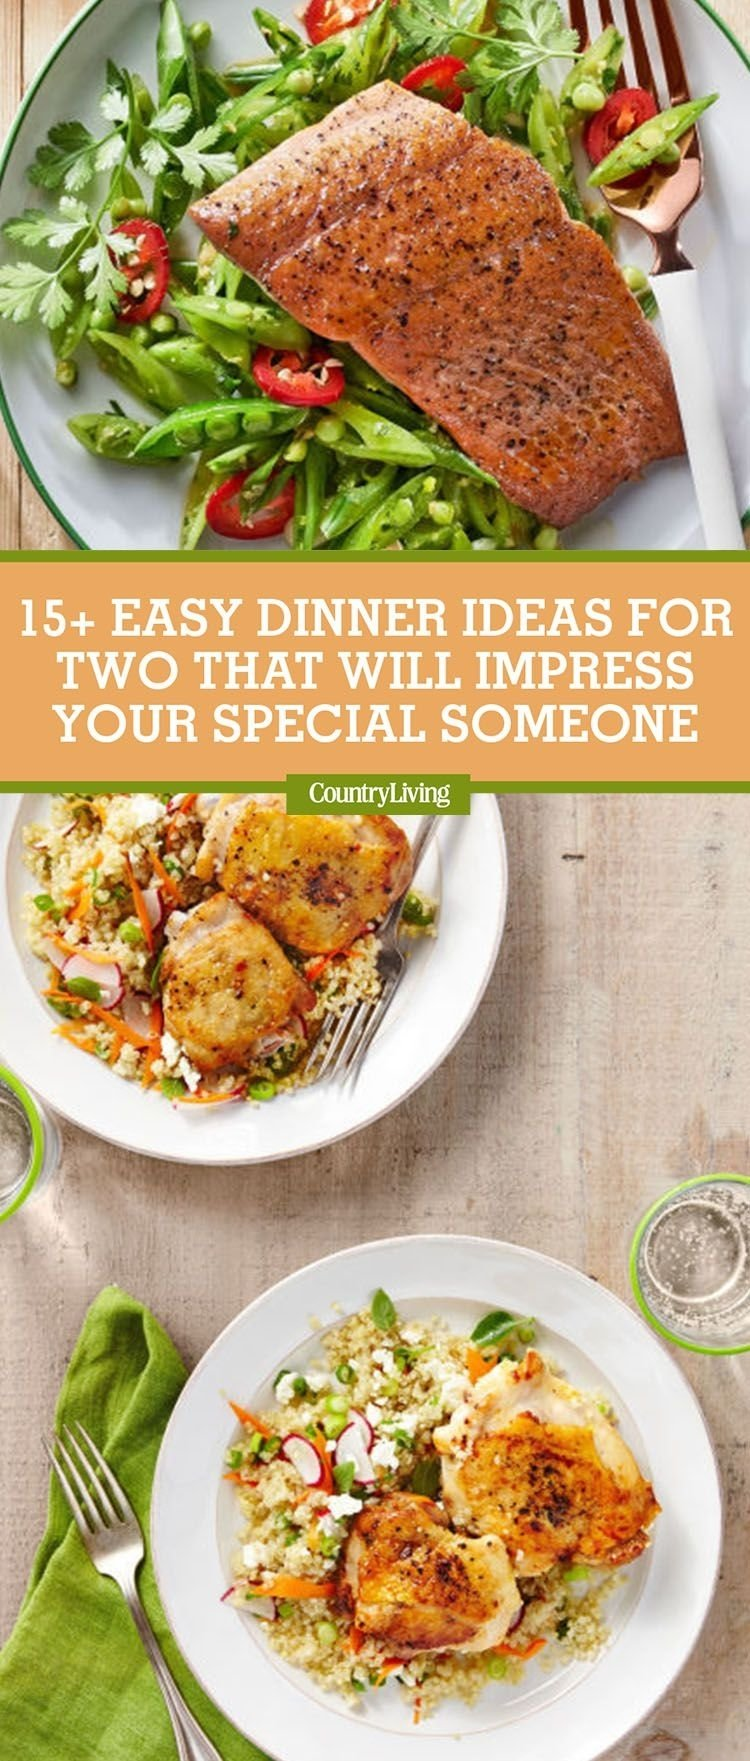 10 Fashionable Ideas For Dinner For Two 17 easy dinner ideas for two romantic dinner for two recipes 10